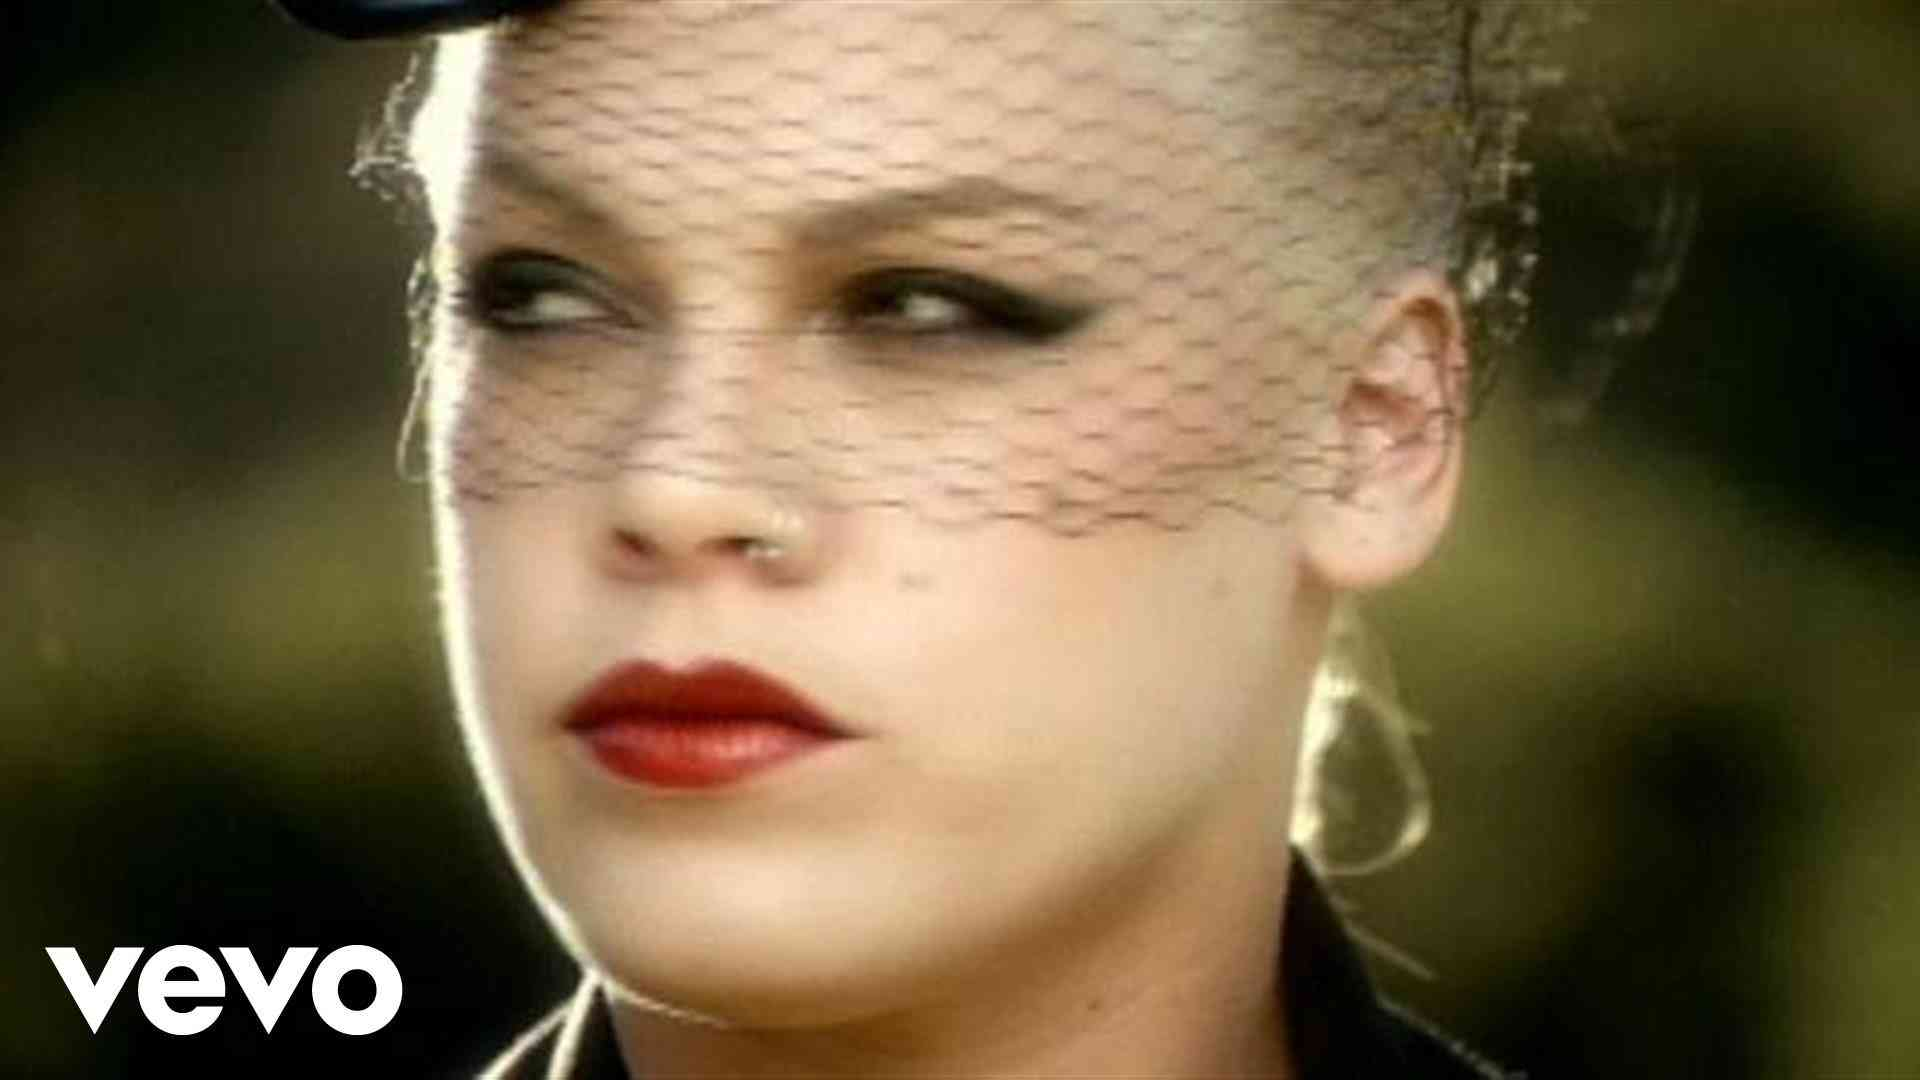 P!nk - Trouble (Video) - YouTube